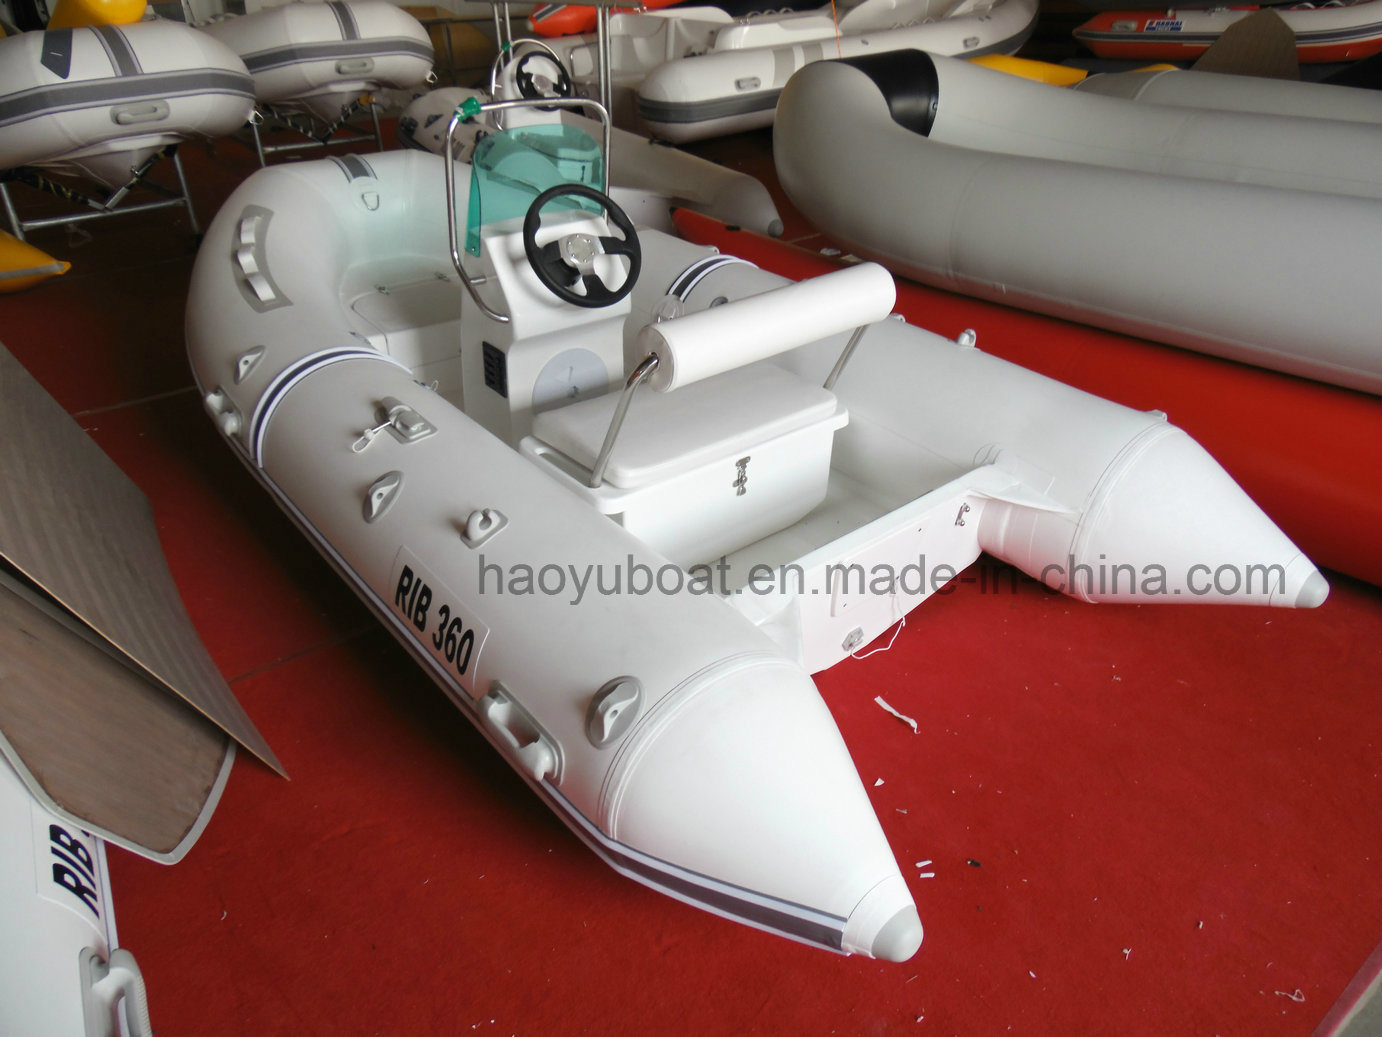 12ft Rib360b Recsue Boat with CE 3.6m Fiberglass Hul Rigidl Inflatable Boat